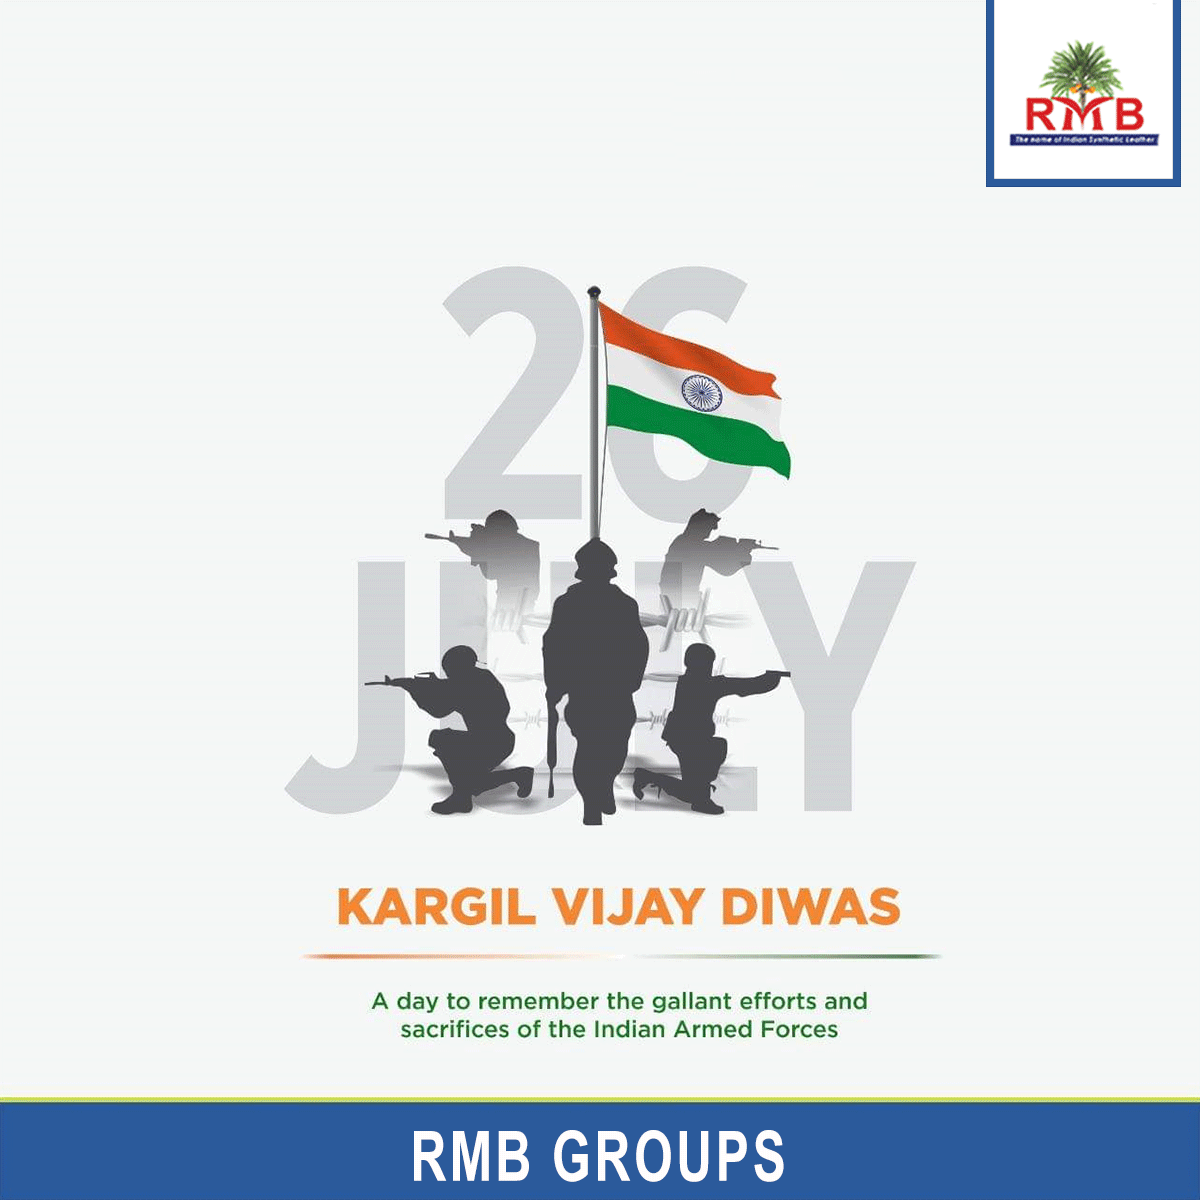 Kargil Vijay Diwas A Day to remember the gallant efforts